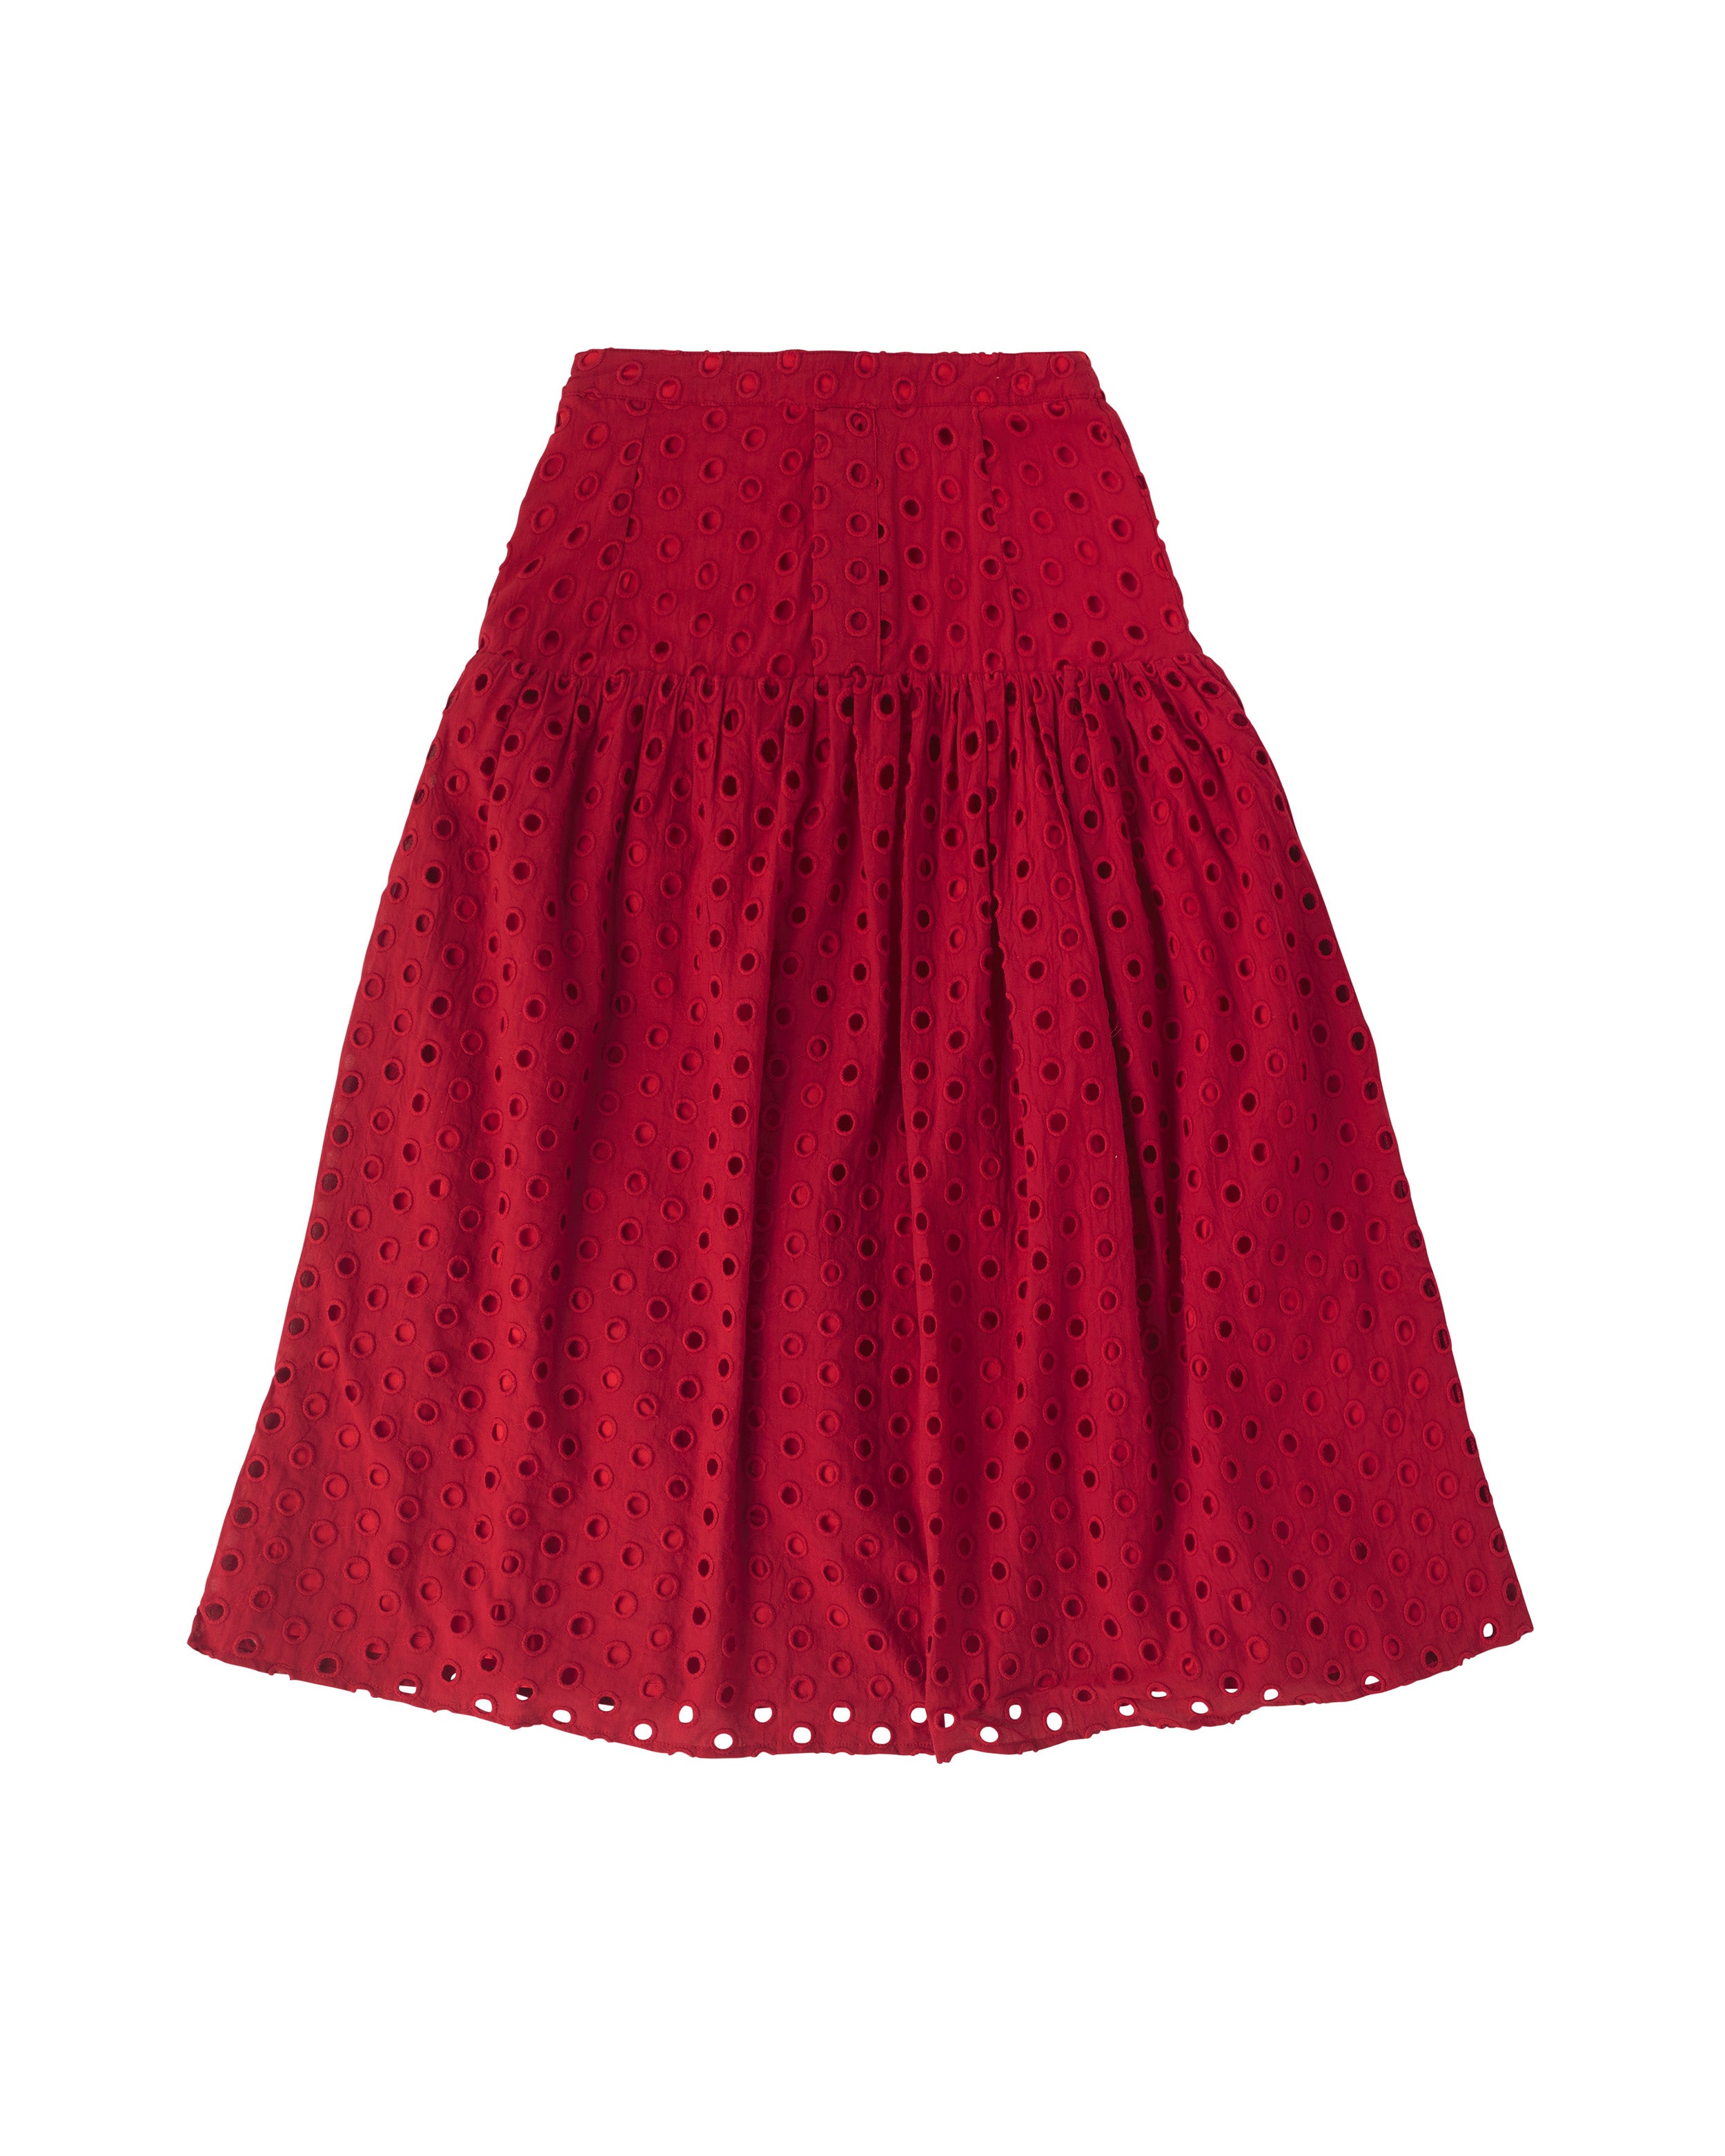 Fiesta Skirt Red